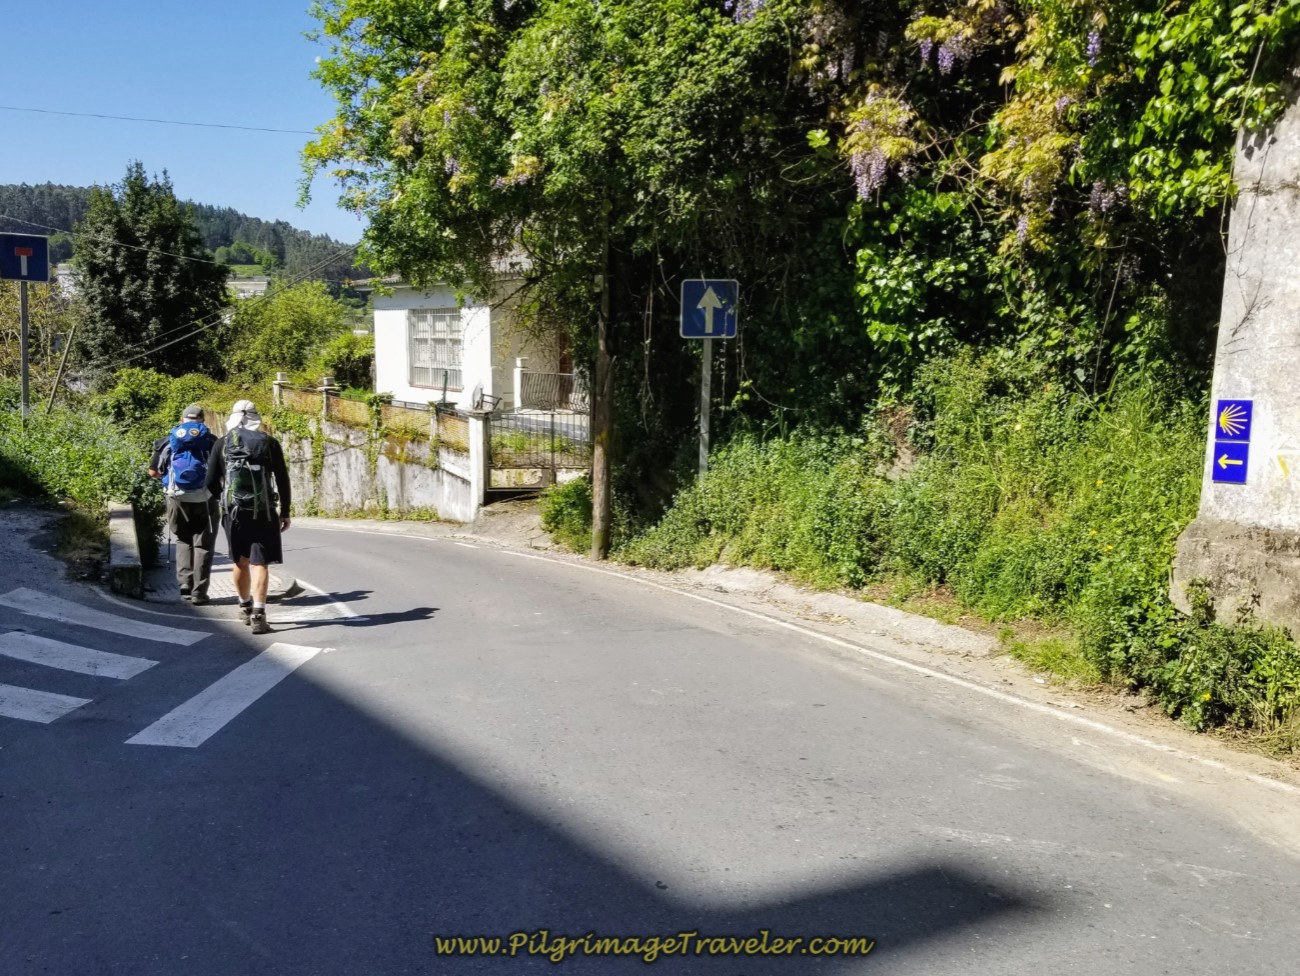 Leaving Betanzos on the Rúa Rollo on day five of the Camino Inglés